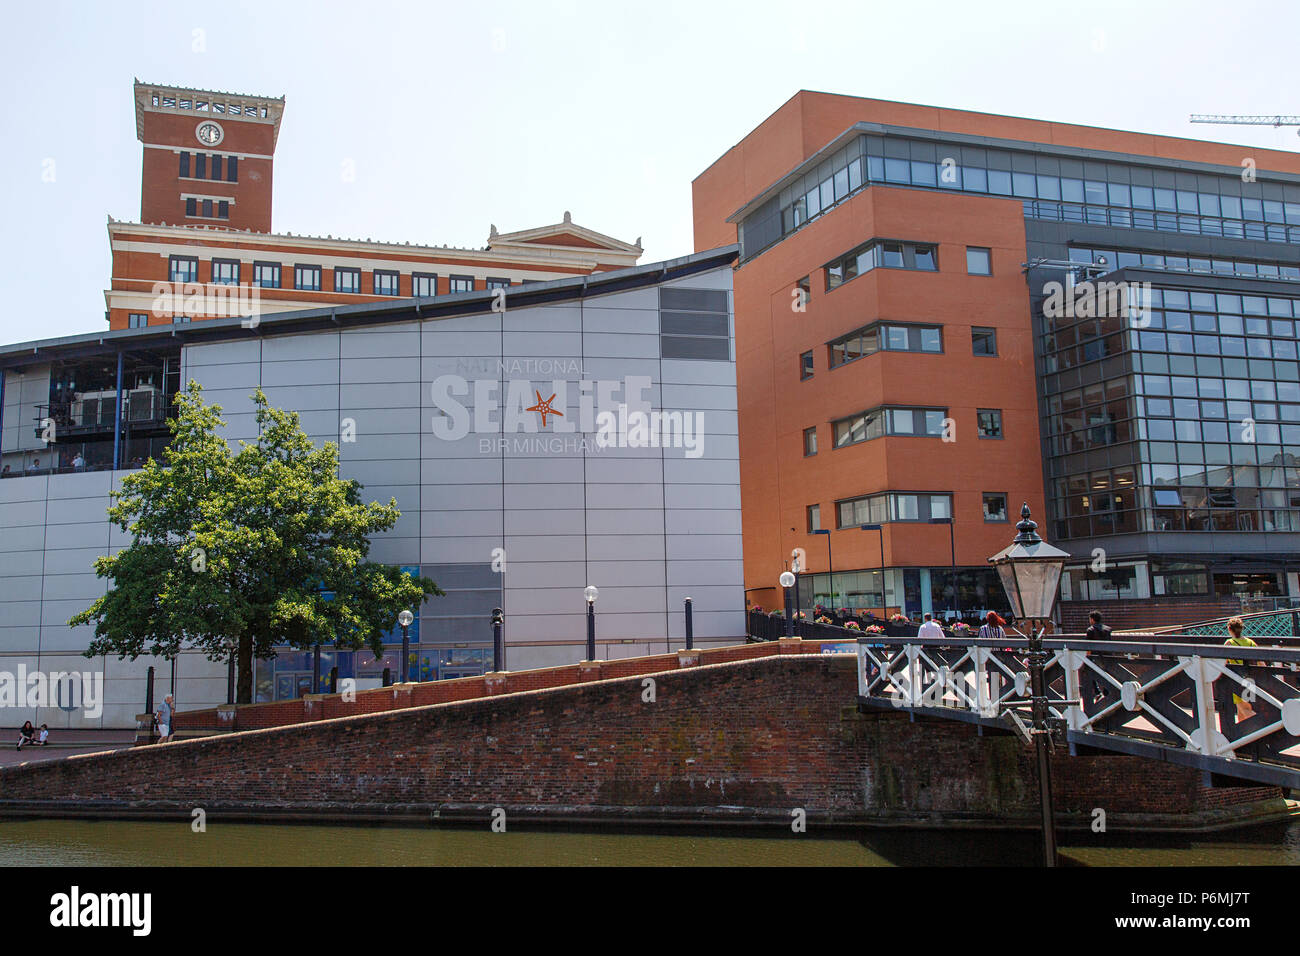 Birmingham, UK: June 29, 2018: The National SEA LIFE Centre is an aquarium with over 60 displays of freshwater and marine life in Brindley Place. - Stock Image